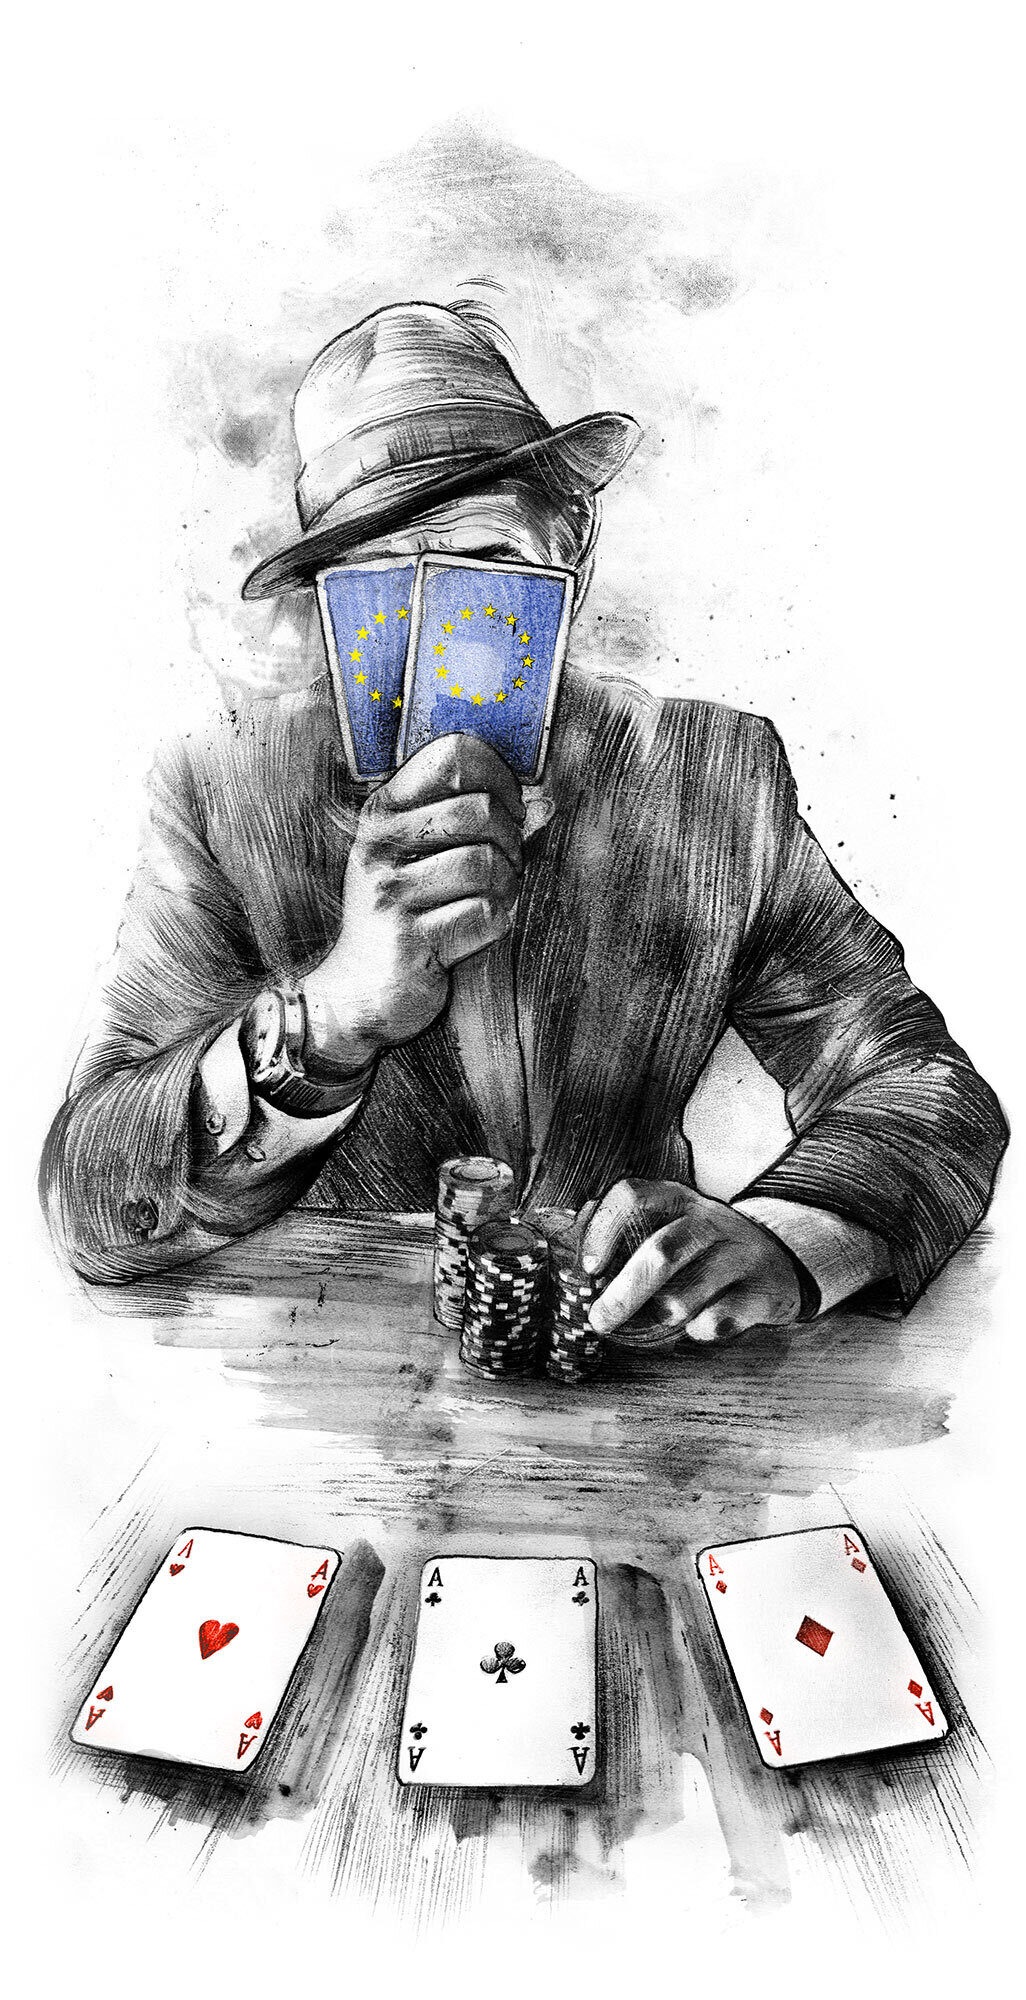 EU Poker editorial illustration - Kornel Illustration | Kornel Stadler portfolio